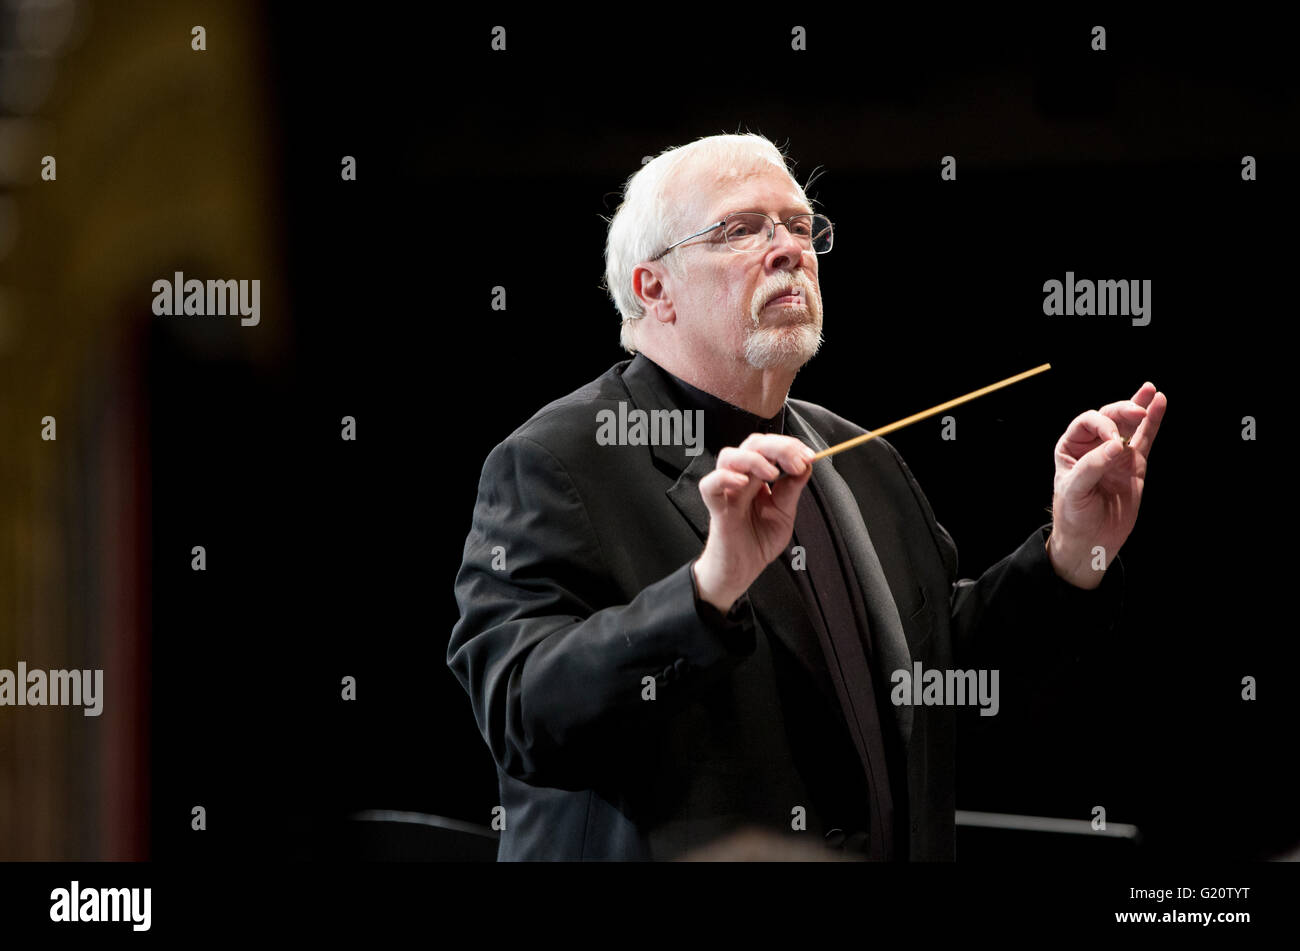 High School orchestra conductor - Stock Image